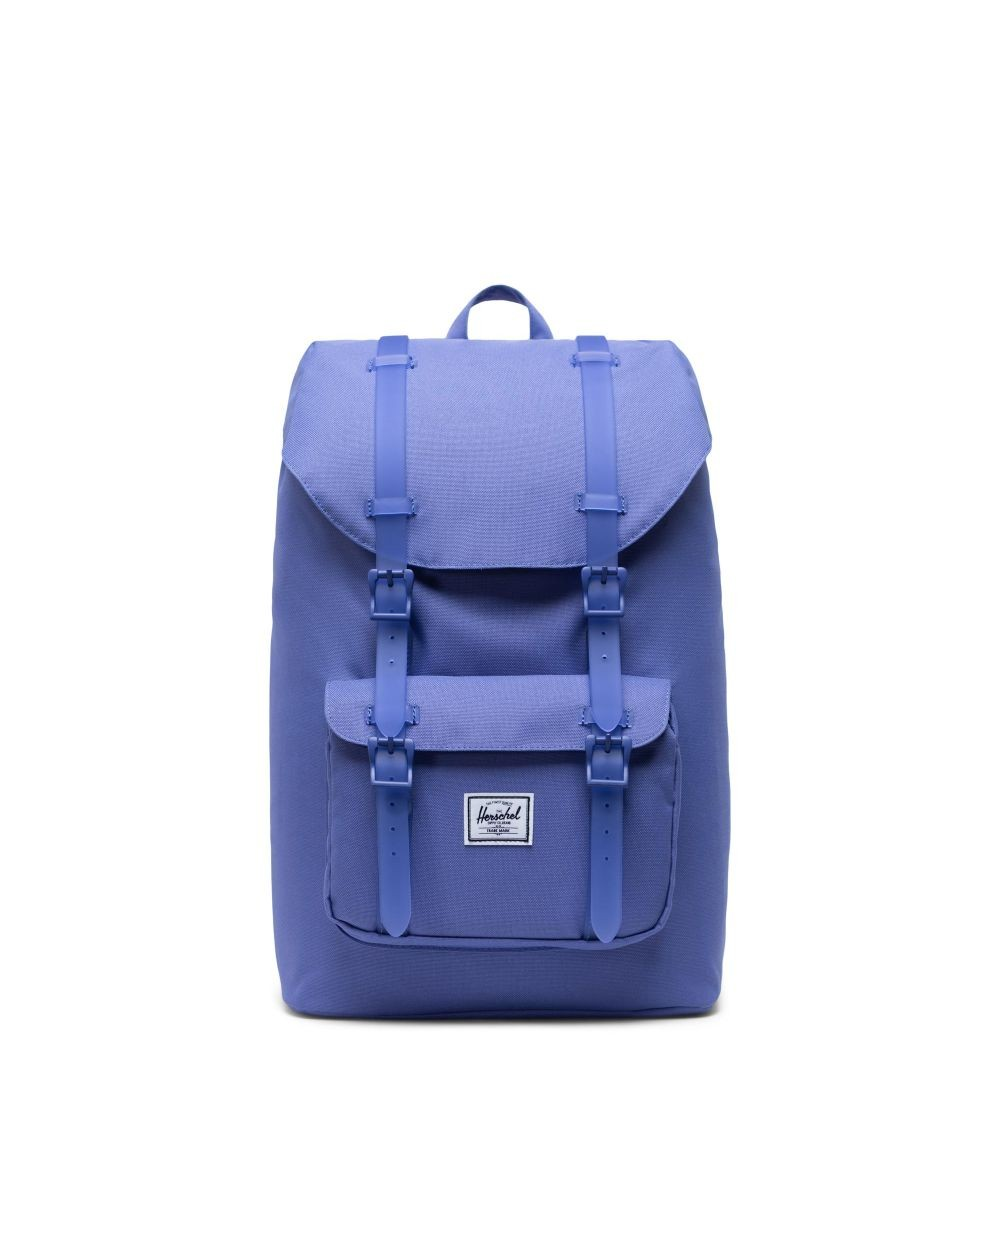 SAC À DOS LITTLE AMERICA MID VOLUME DUSTED PERY HERSCHEL